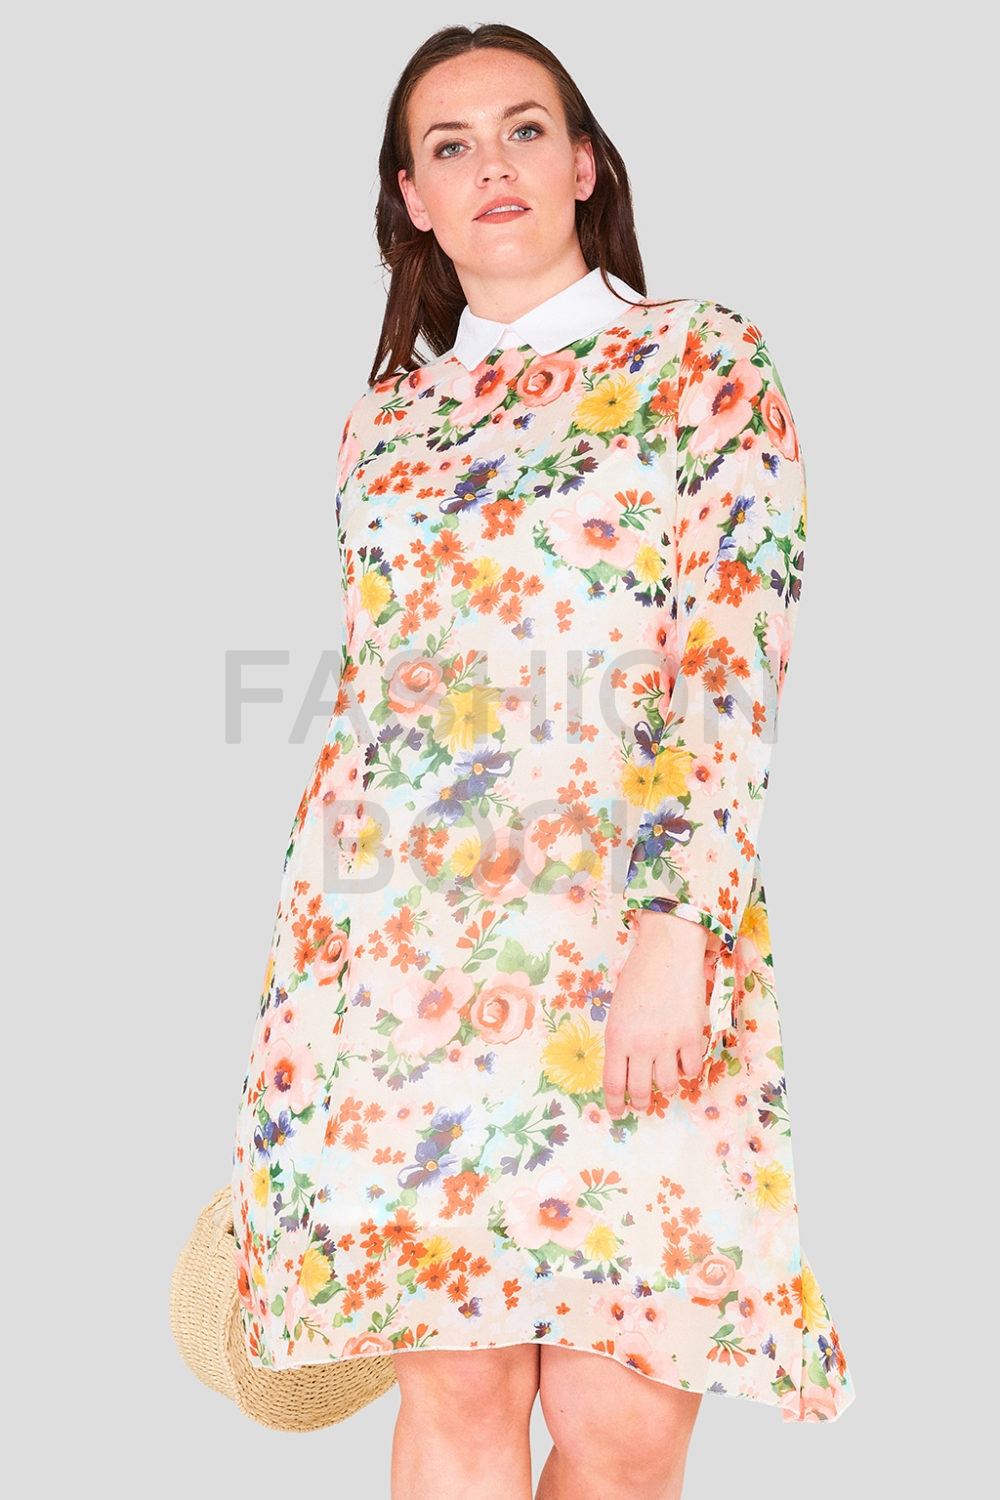 Swing Chiffon Print Collar Plus Size Wholesale Dress